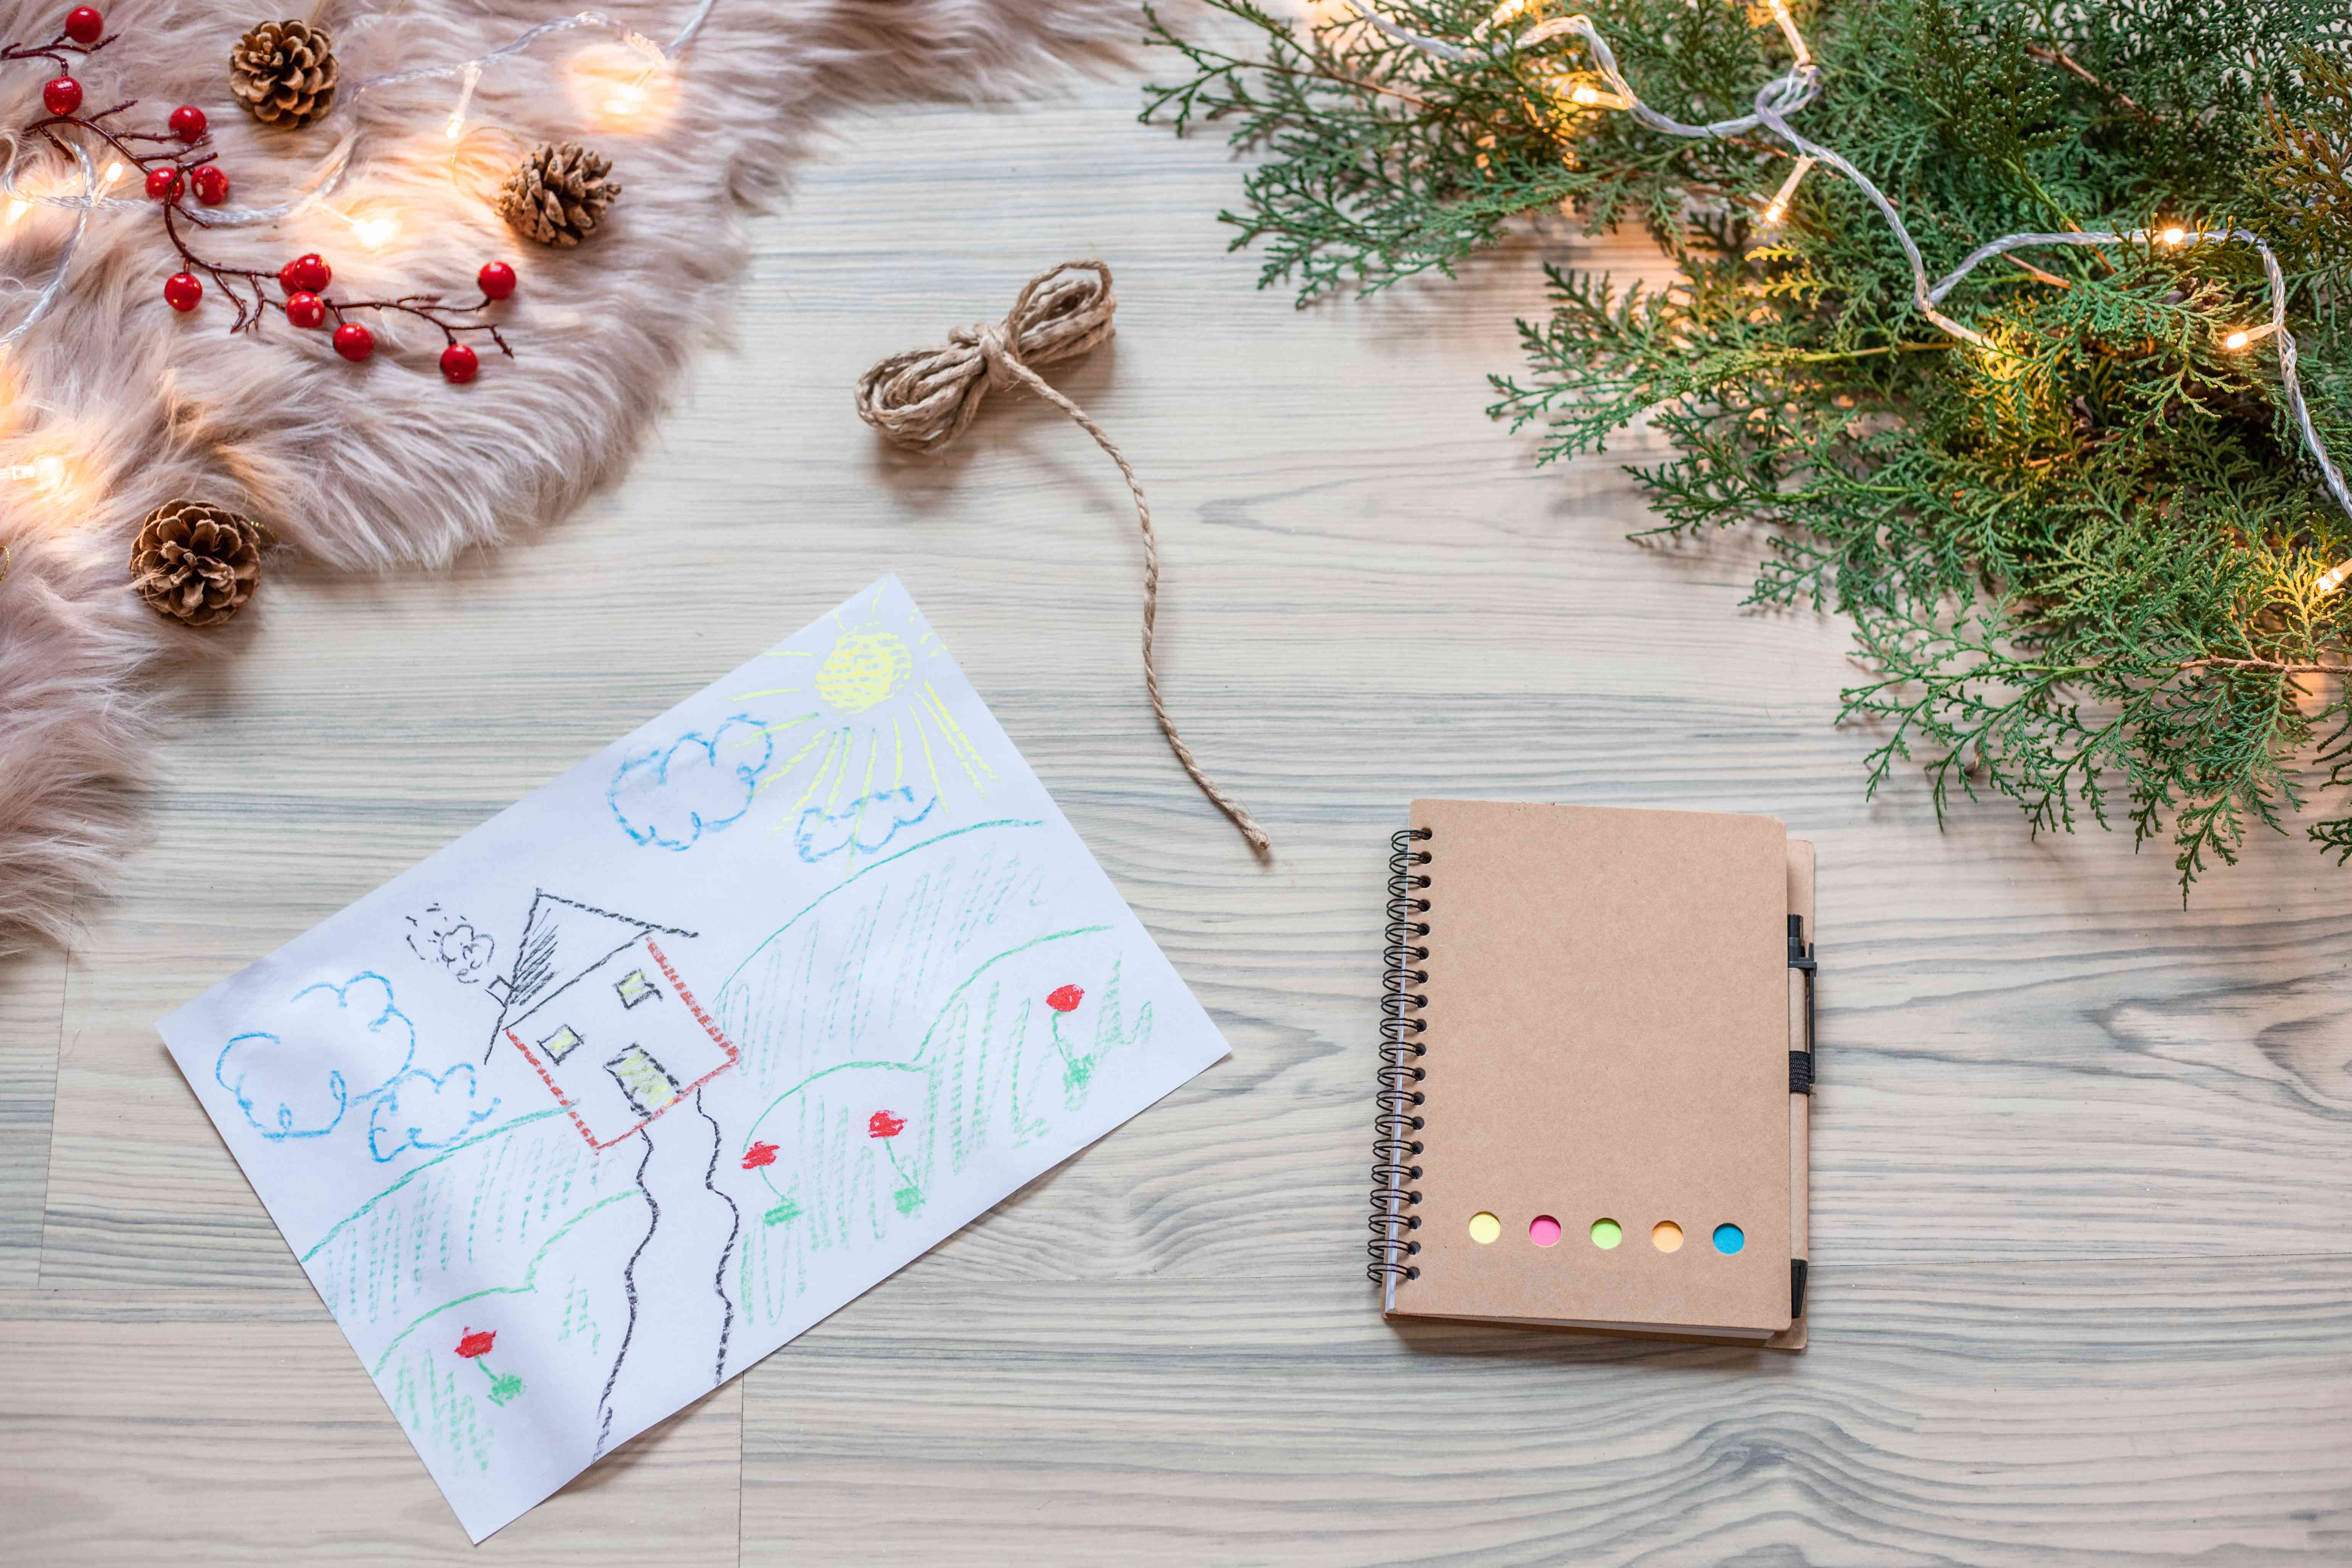 child's drawing repurposed for gift wrap christmas paper